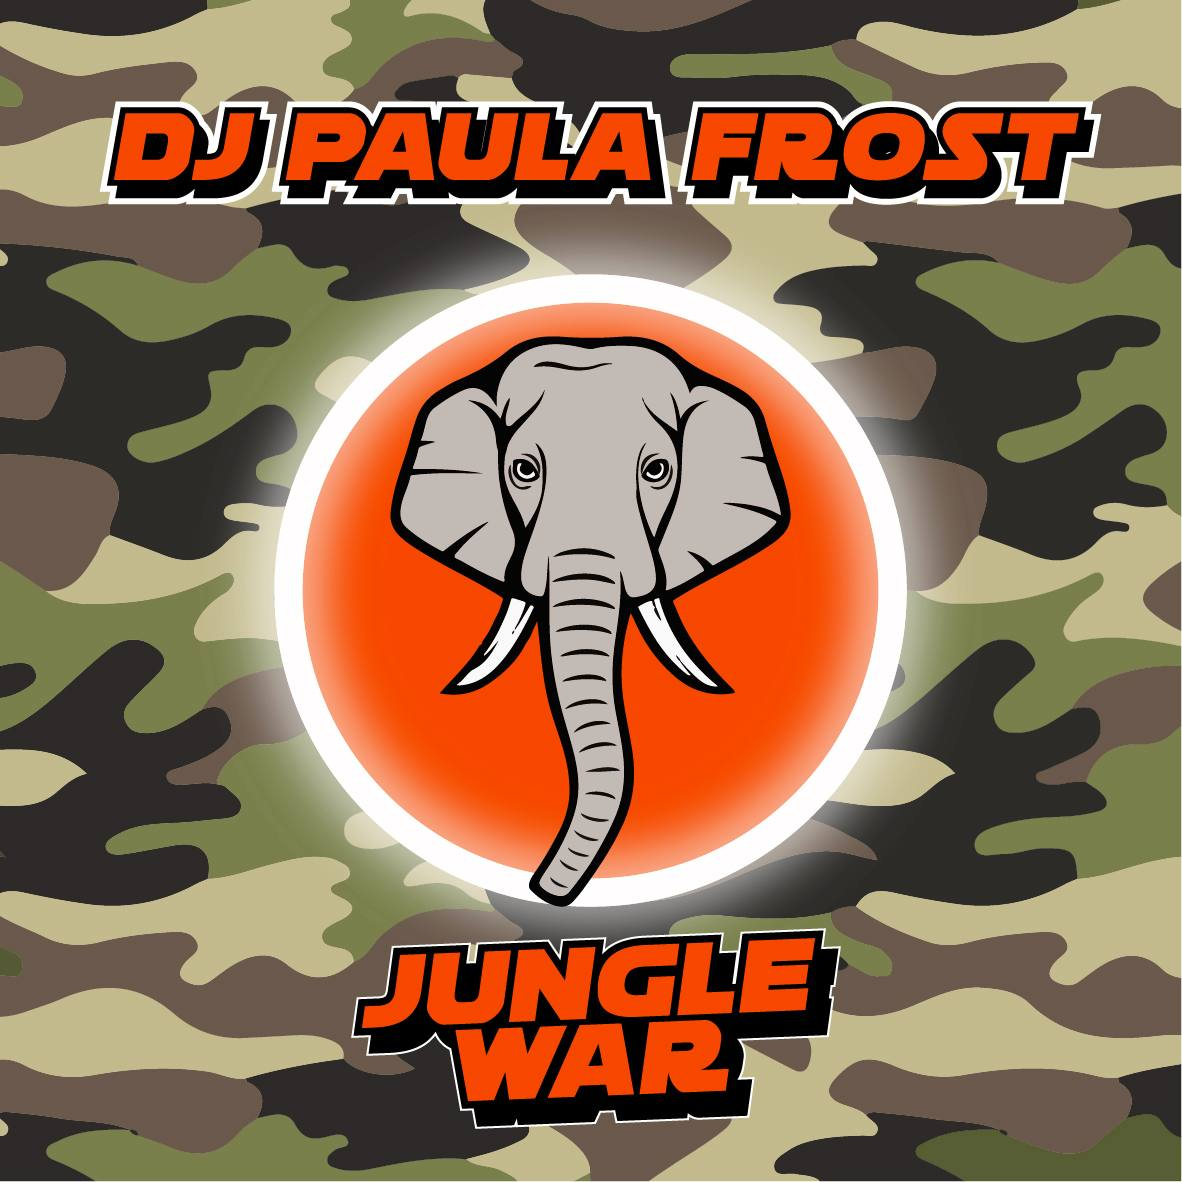 DJ PAULA FROST – JUNGLE WAR (SINGLE DOWNLOAD)